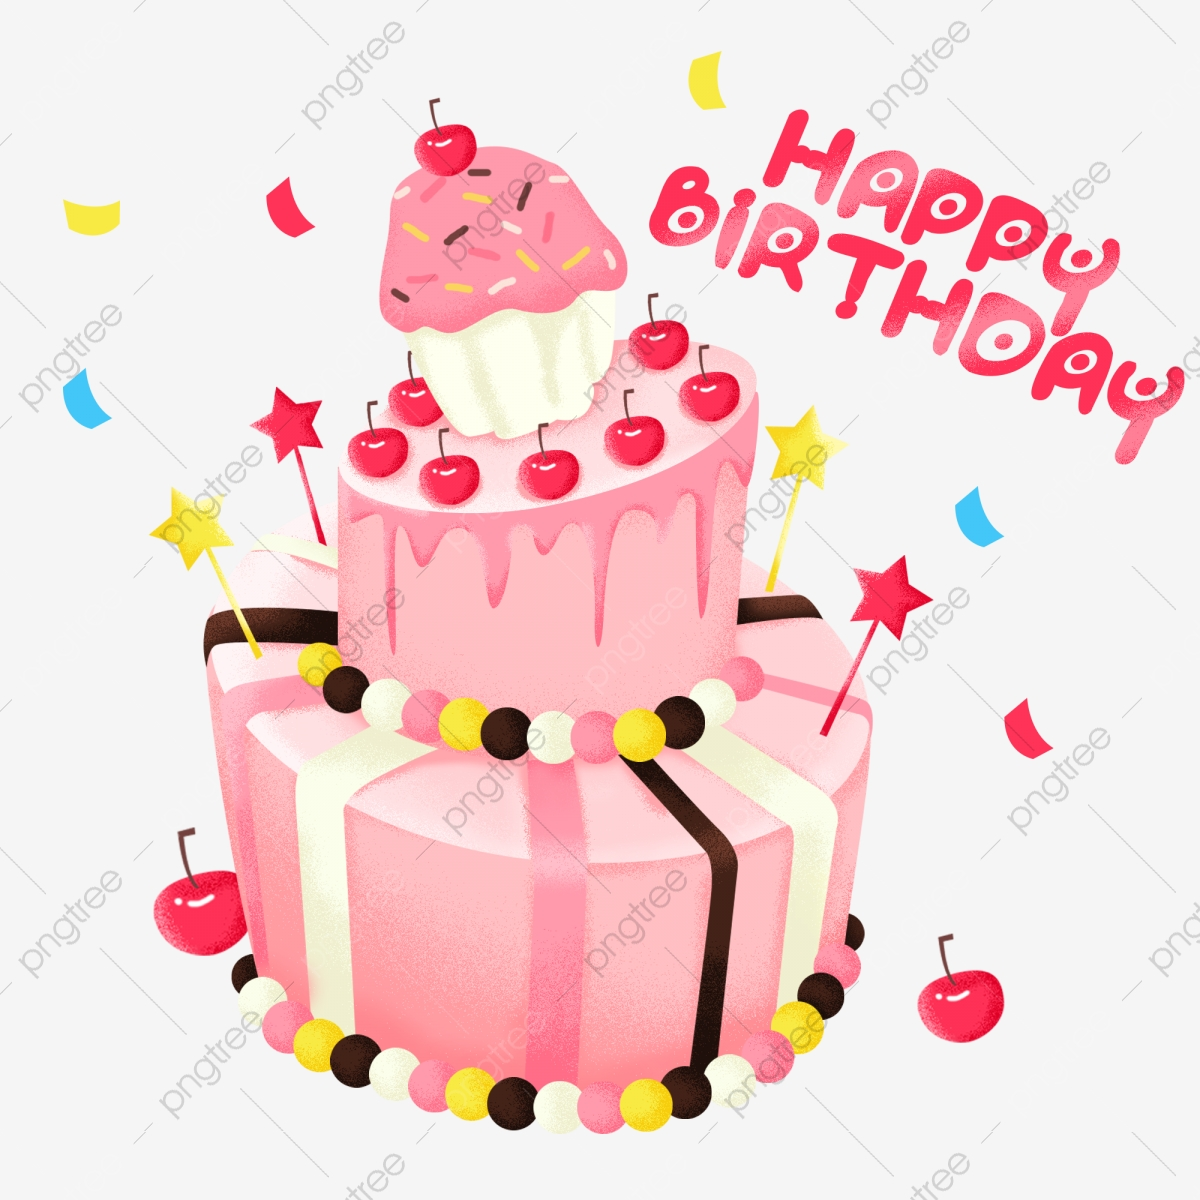 Enjoyable Pink Birthday Cake Png Material Pink Cake Birthday Cake Cake Funny Birthday Cards Online Fluifree Goldxyz